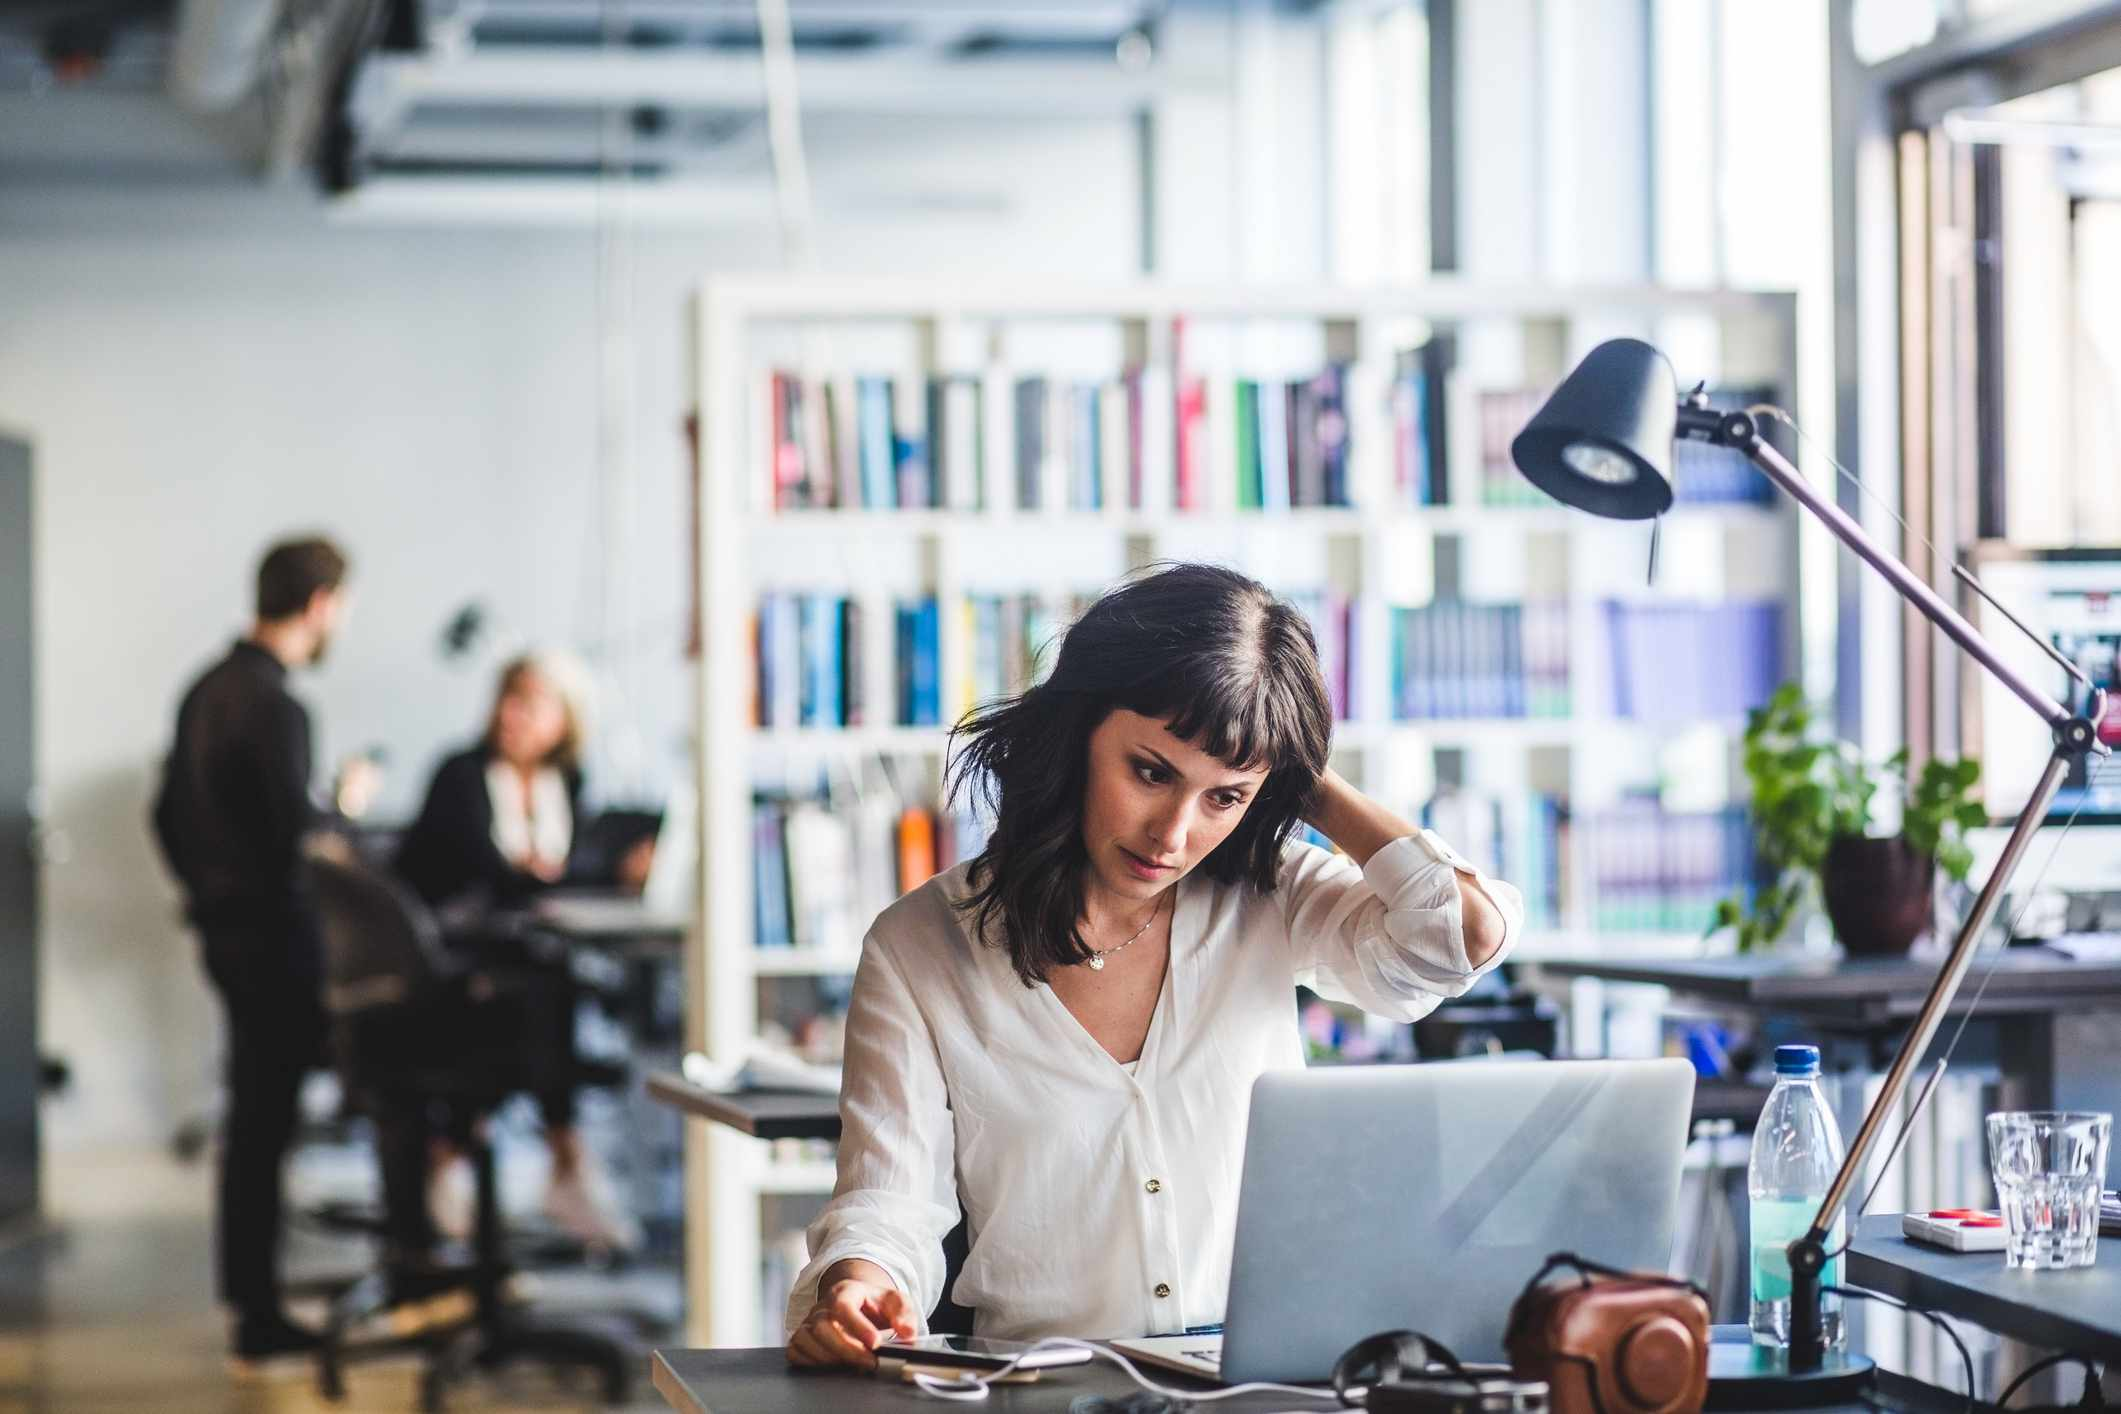 A woman working at her desk in a busy office.